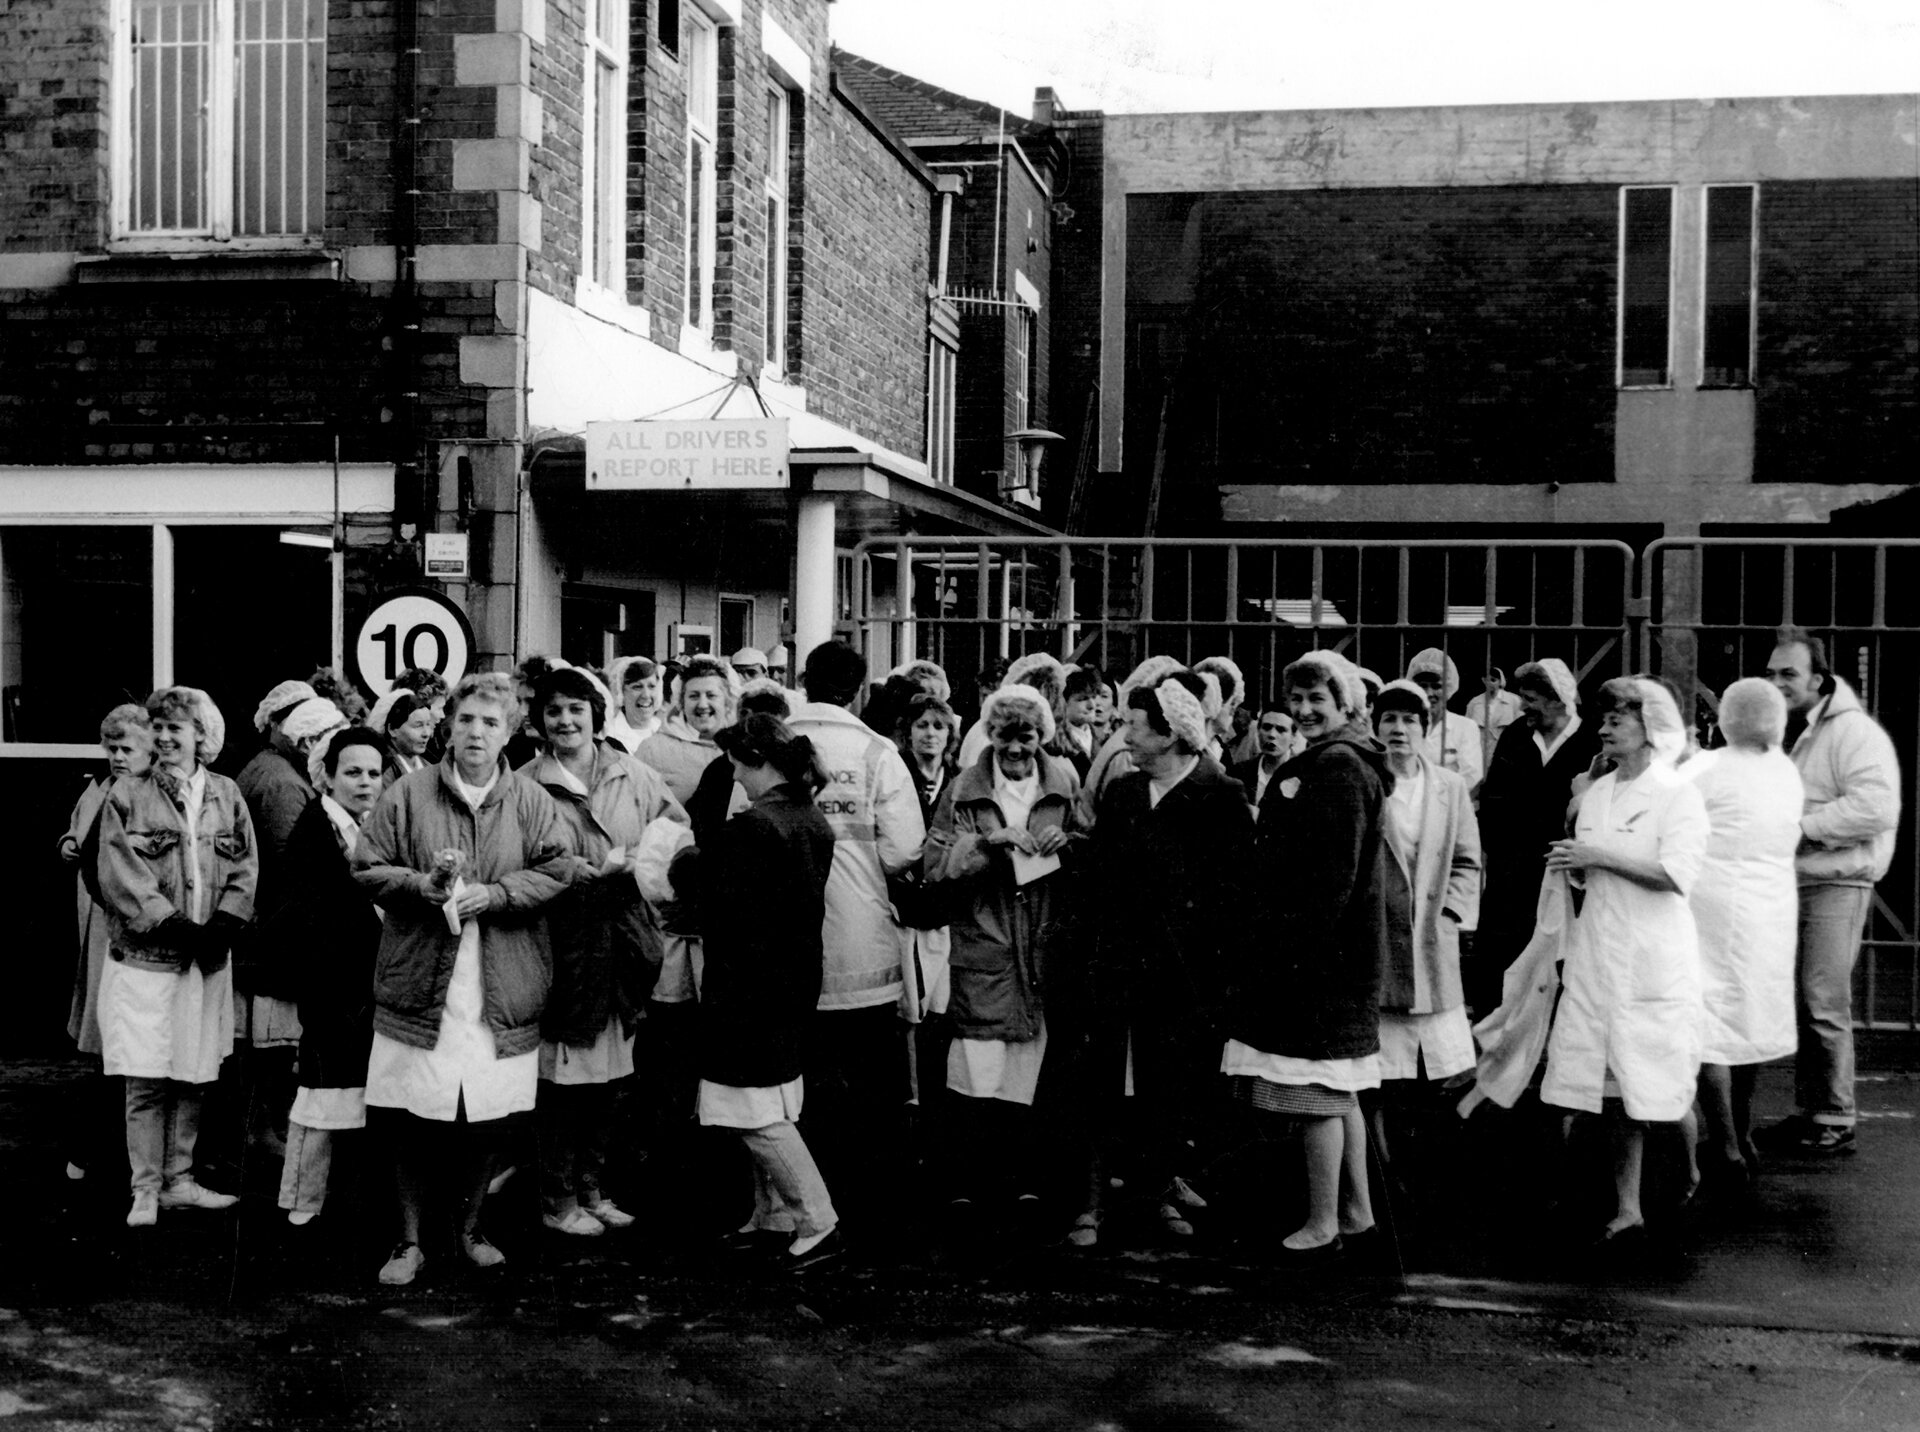 George Bassett and Co Ltd confectionery manufacturers employees out in support of the ambulance workers